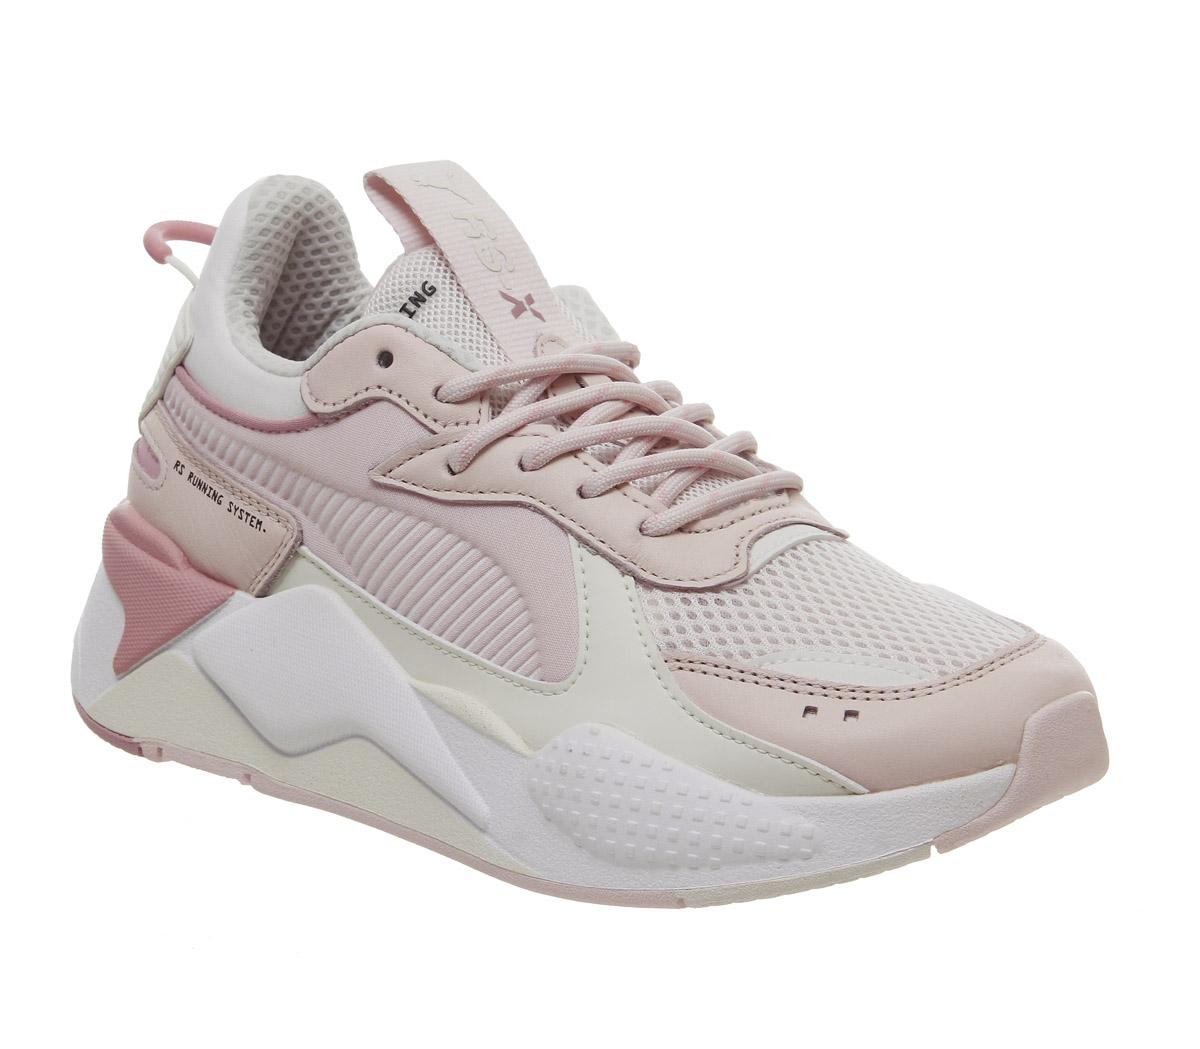 Puma Rs-x Tracks Trainers Pink Pink Peach White - Sneaker damen